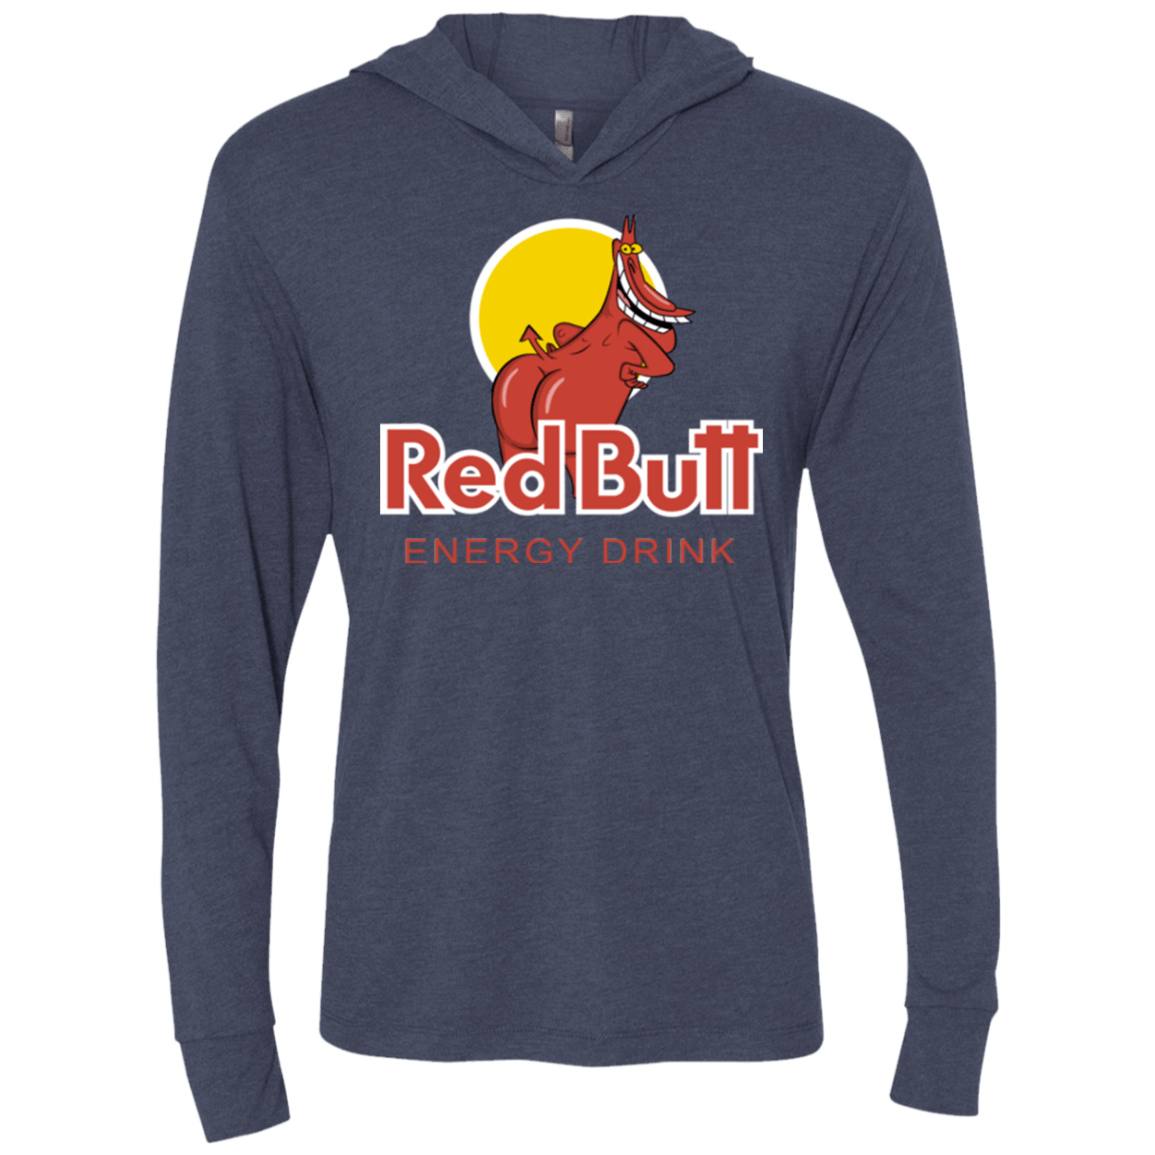 T-Shirts Vintage Navy / X-Small Red butt Triblend Long Sleeve Hoodie Tee